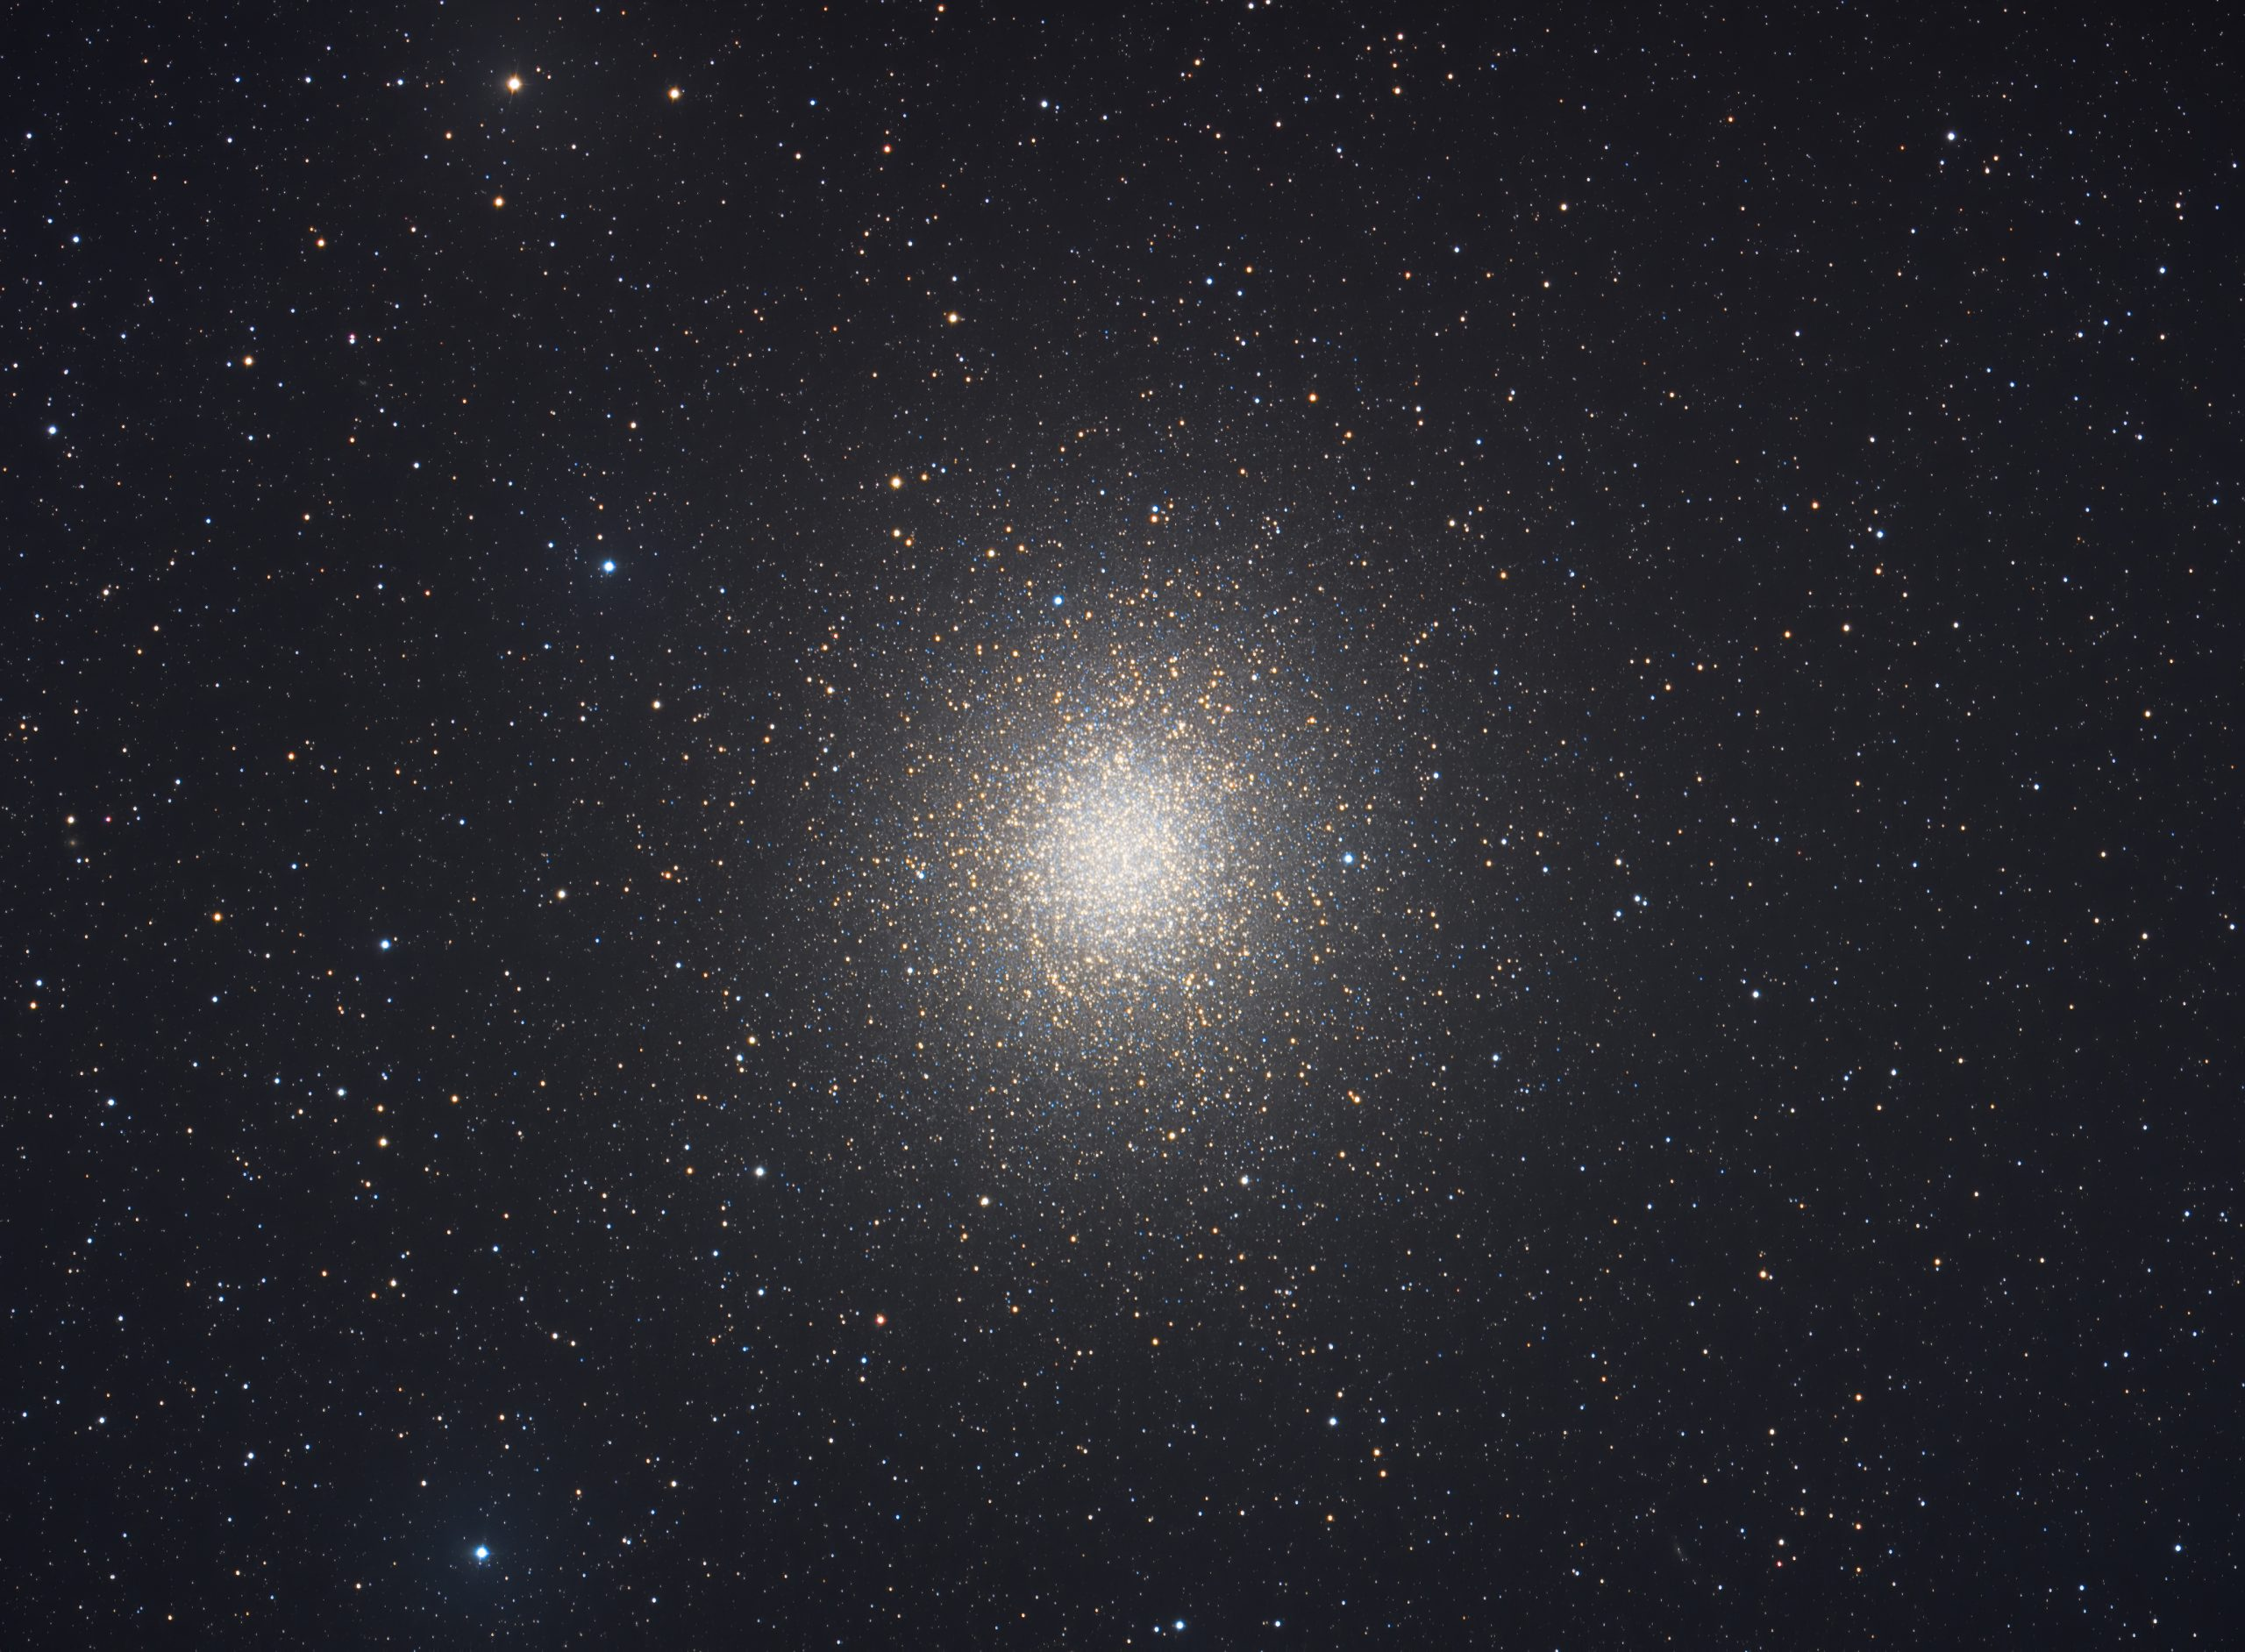 Globular cluster of stars showing concentration of white and yellow stars at centre in a sphere like structure with it dispersing into more tenitical like structures moving away from the centre.